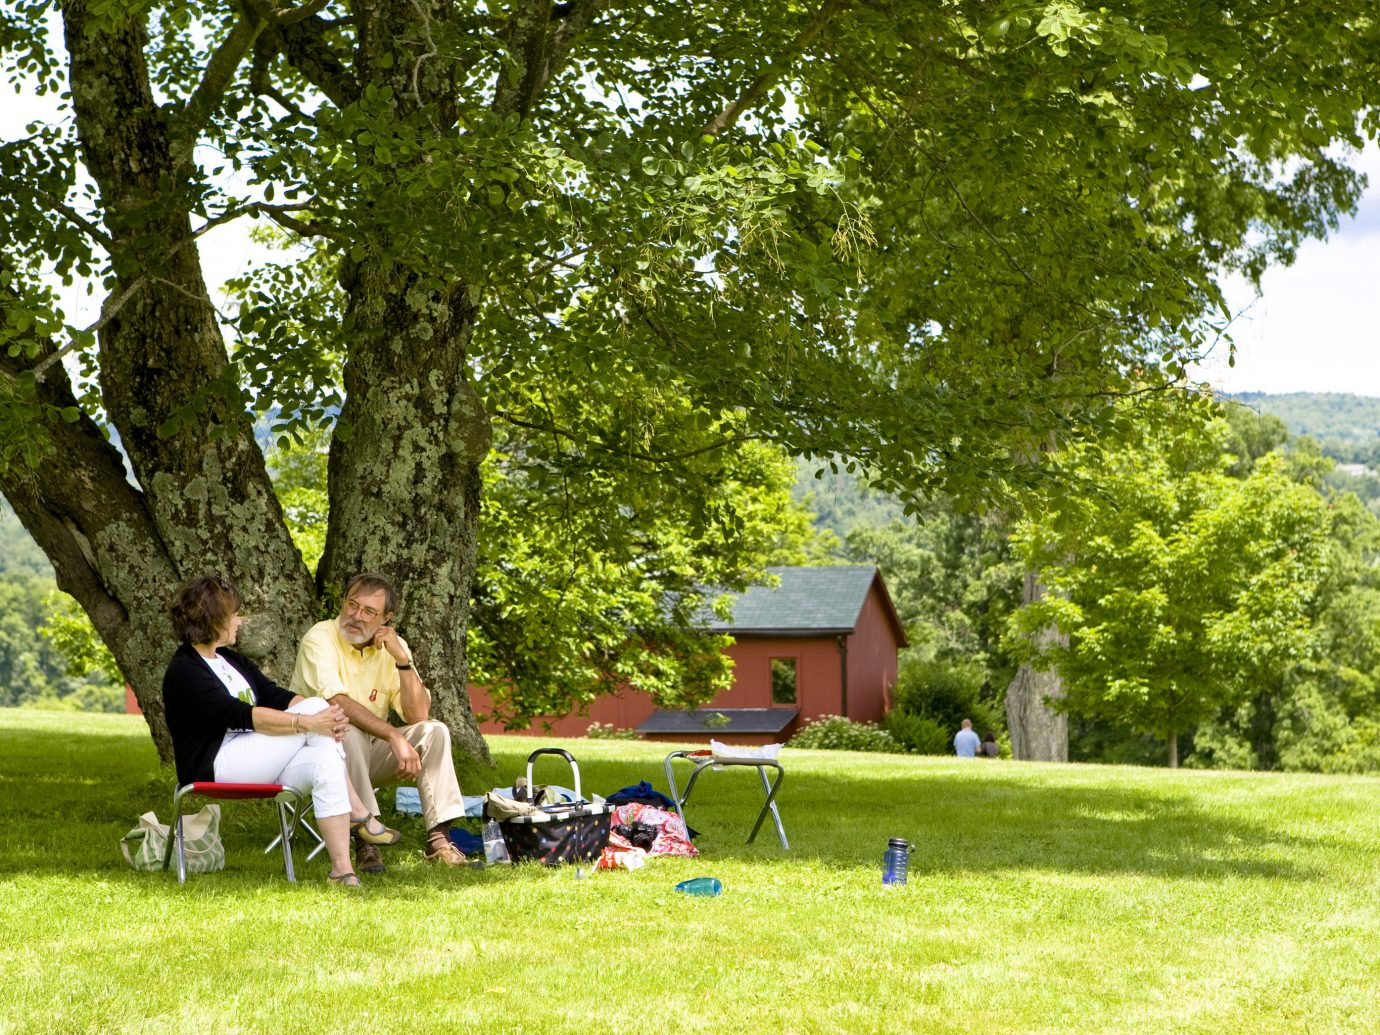 Picnic in The Berkshires, Massachusetts